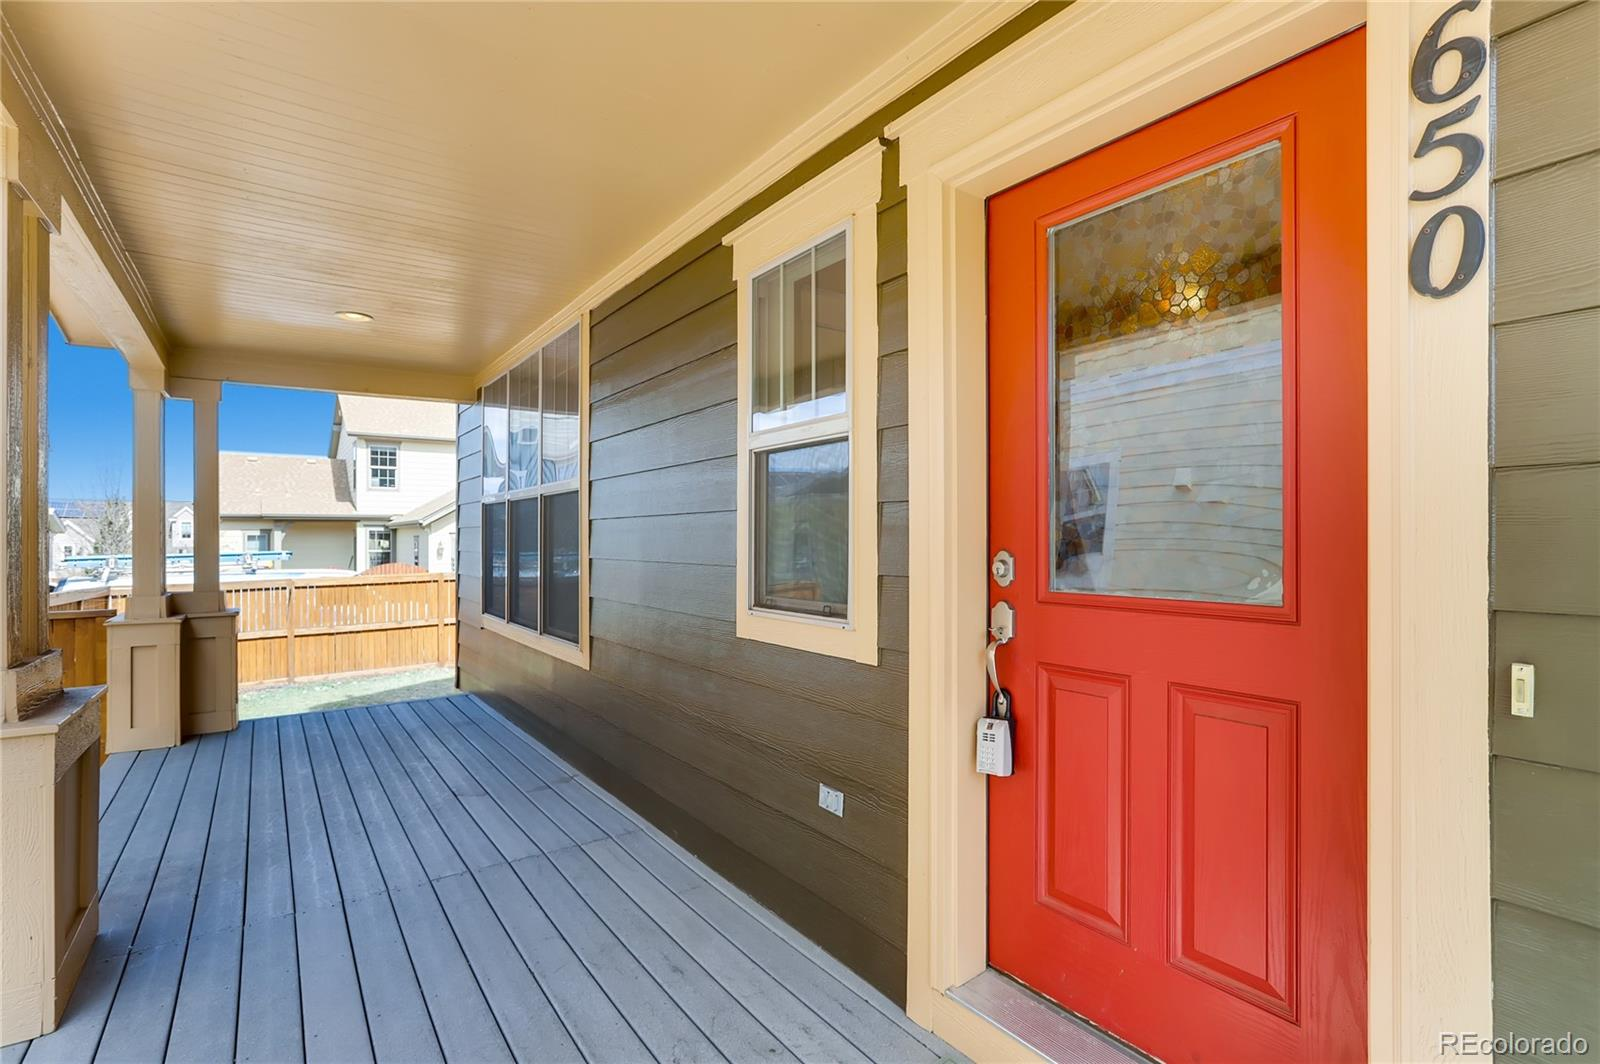 MLS# 3732250 - 3 - 650 Homestead Street, Lafayette, CO 80026